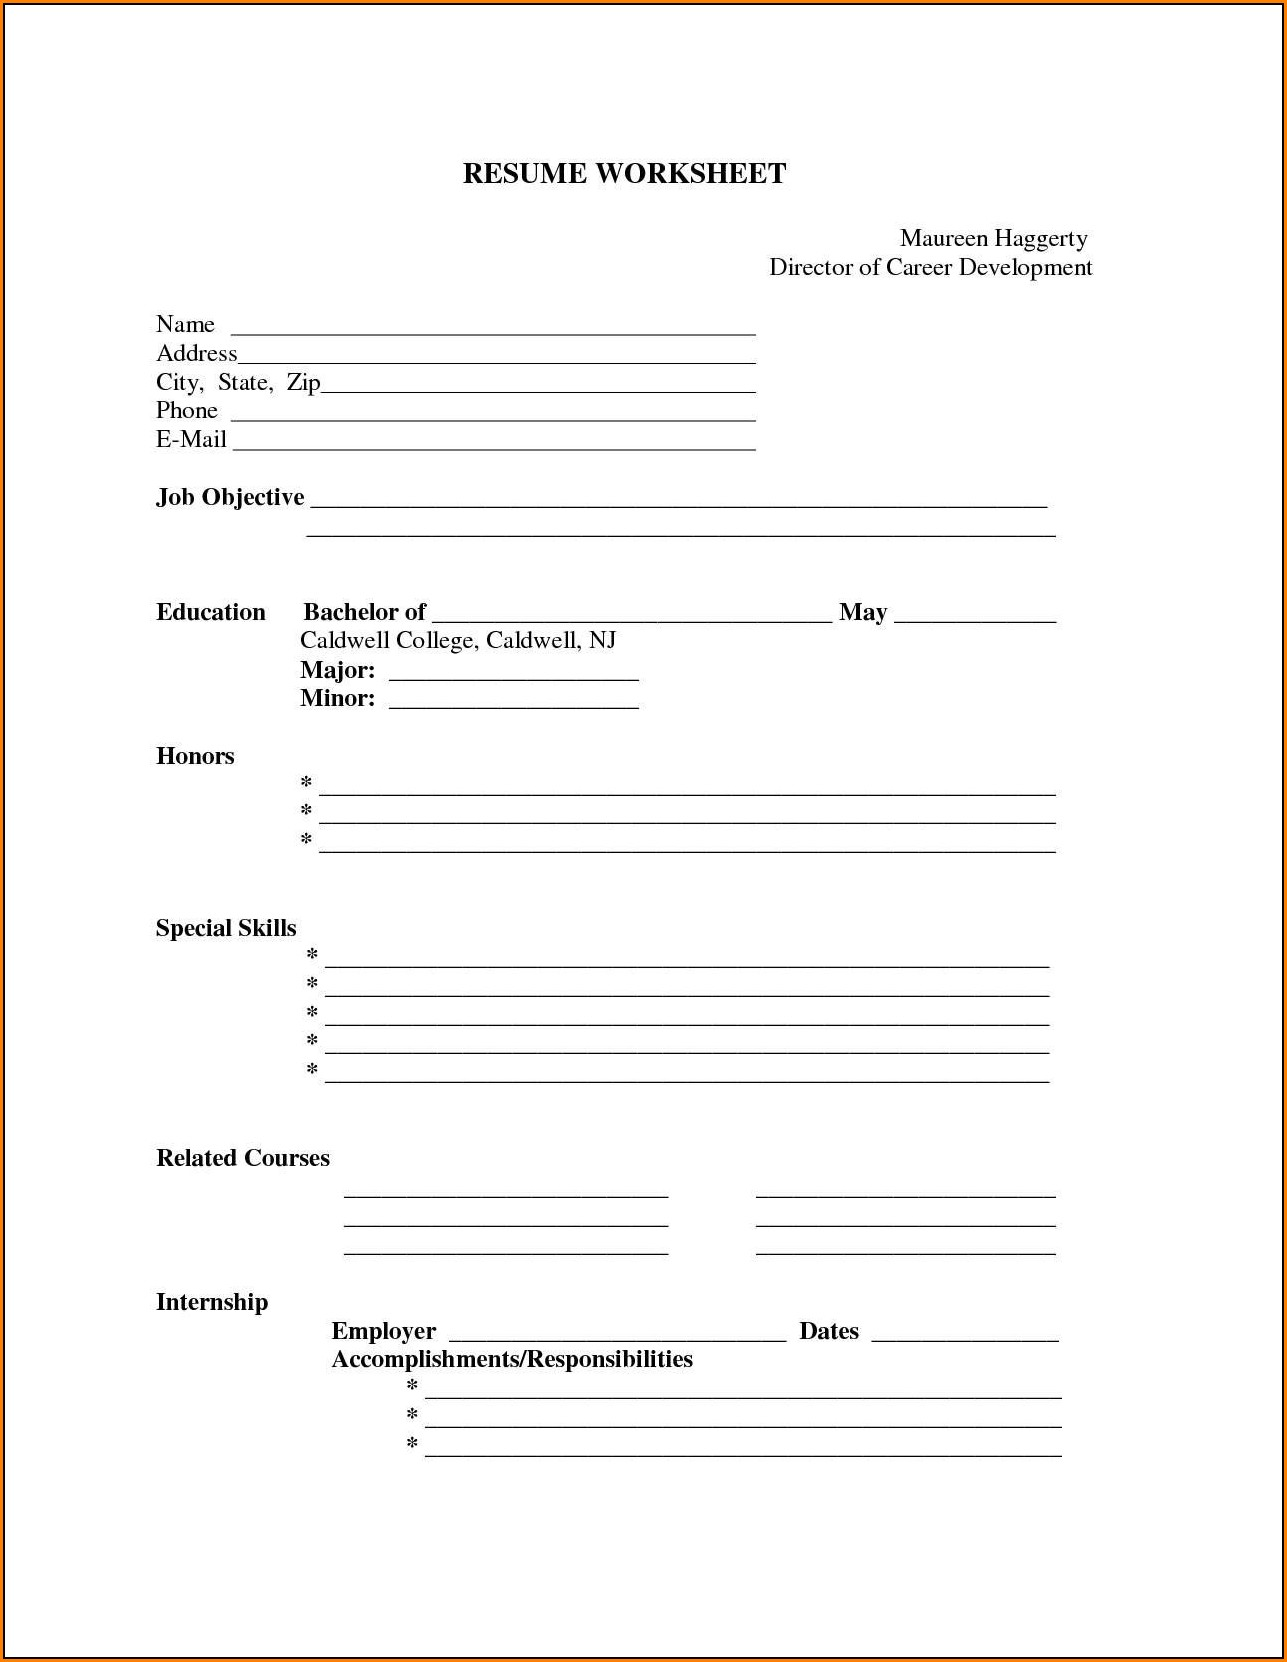 Free Printable Fill In The Blank Resume Templates